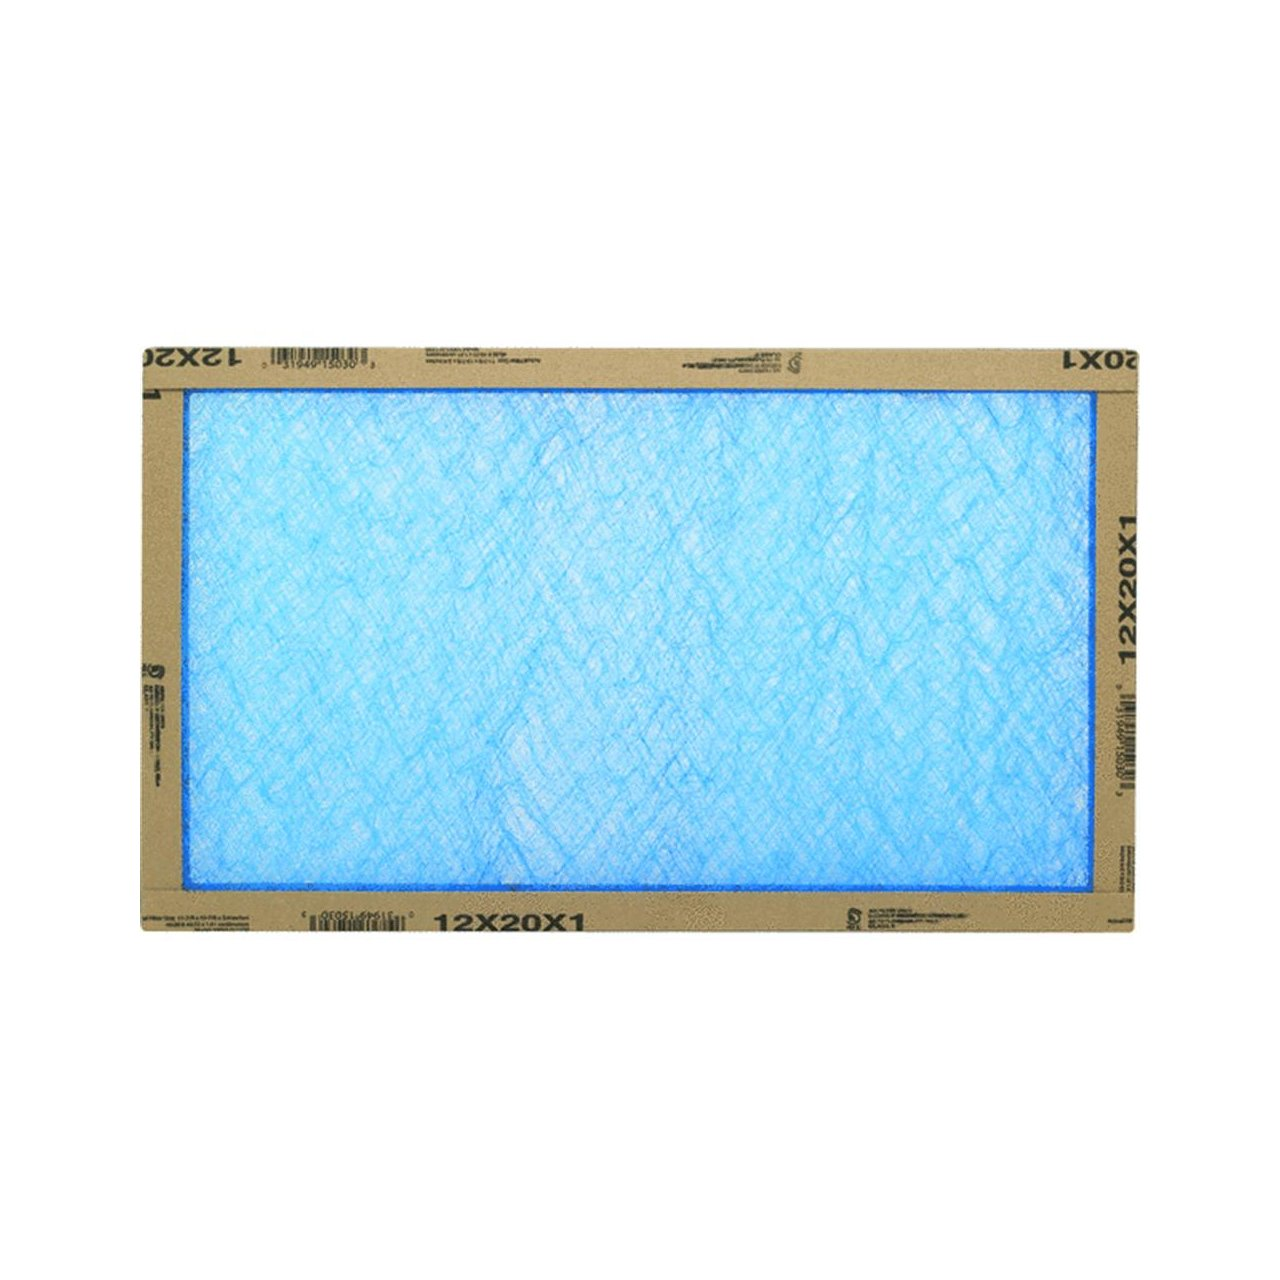 Flanders/Precisionaire 12x20x1 Fiberglass Furnace Filters in white background